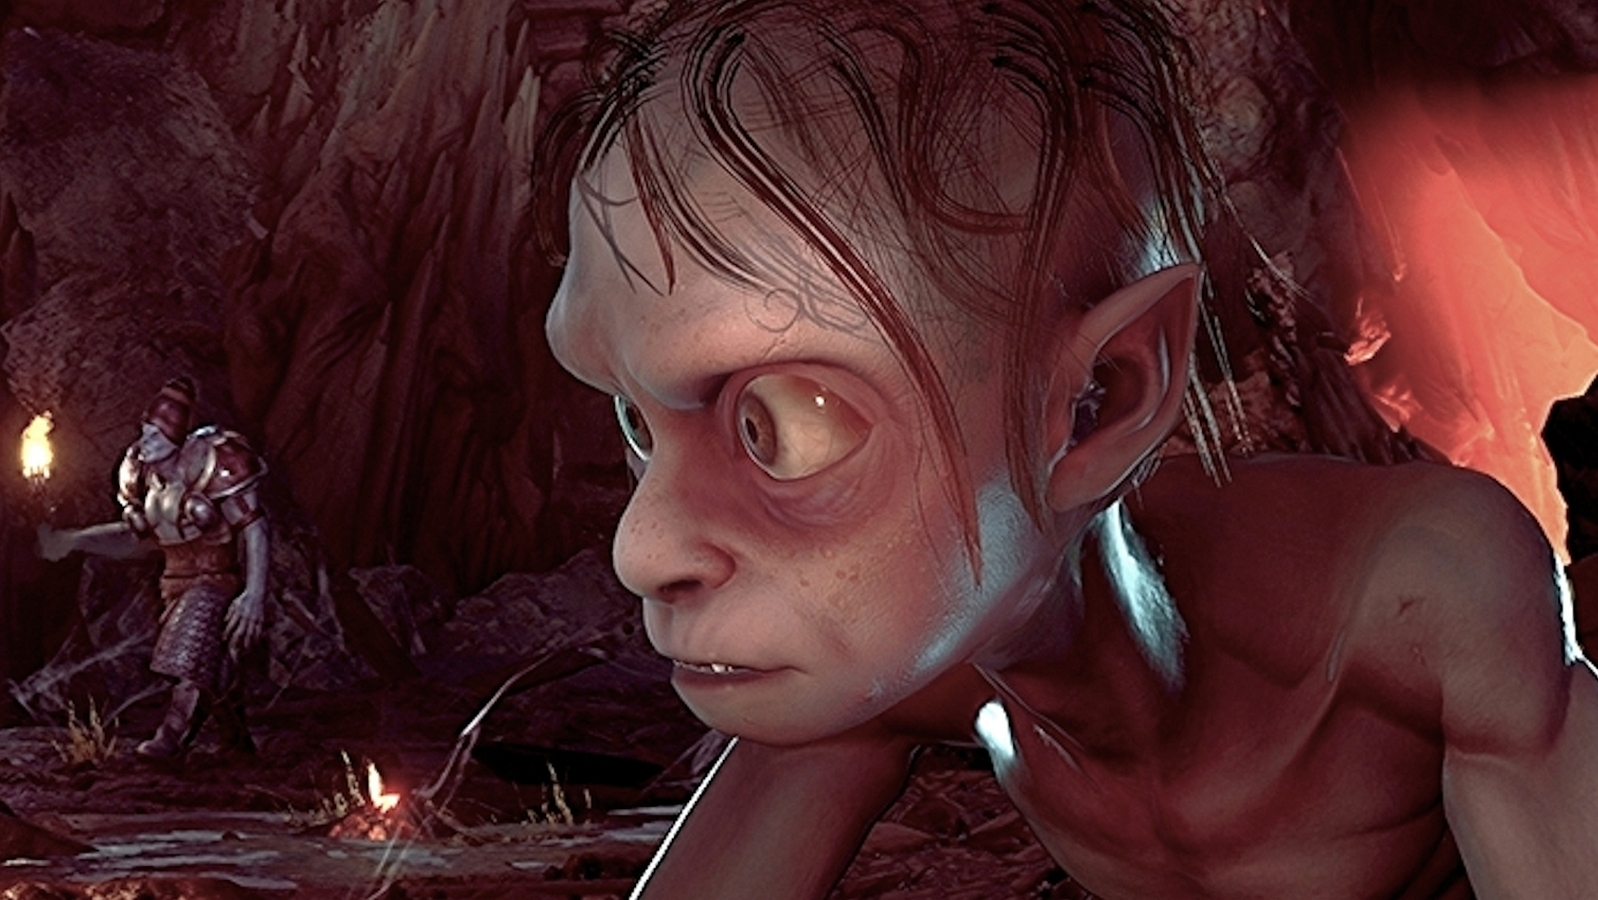 Lord of the Rings: Gollum has been delayed into next year - Eurogamer.net